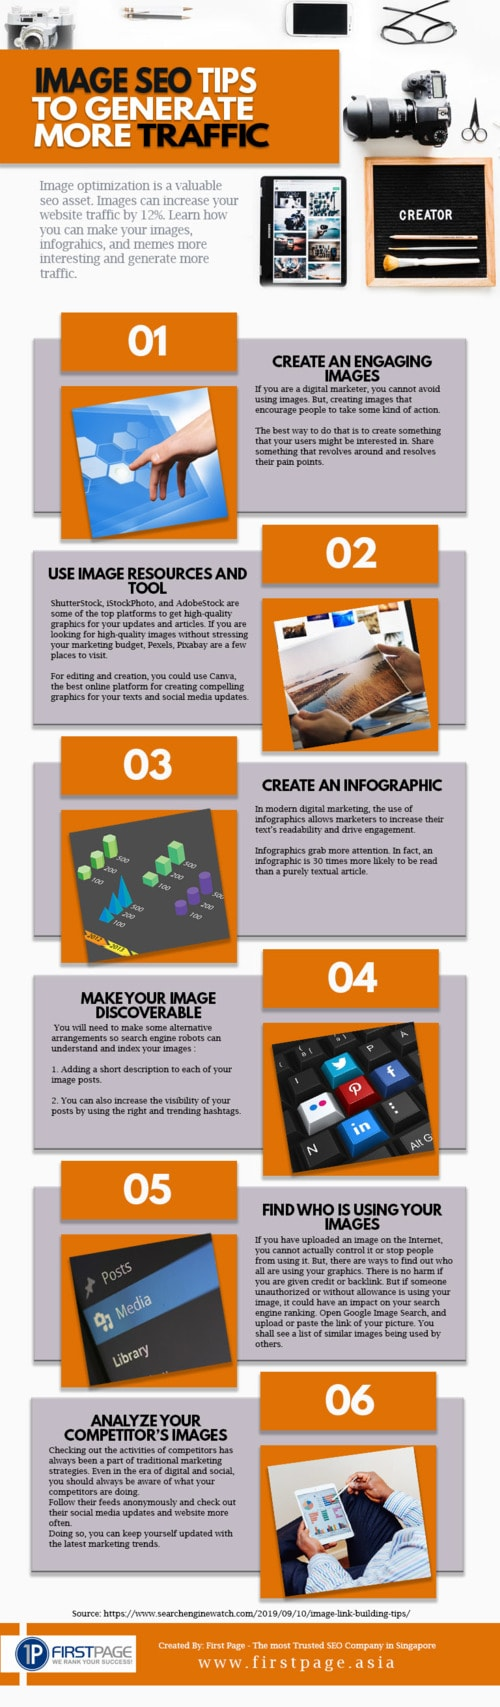 SEO Services | Image SEO Tips To Generate More Traffic via Chester Loke